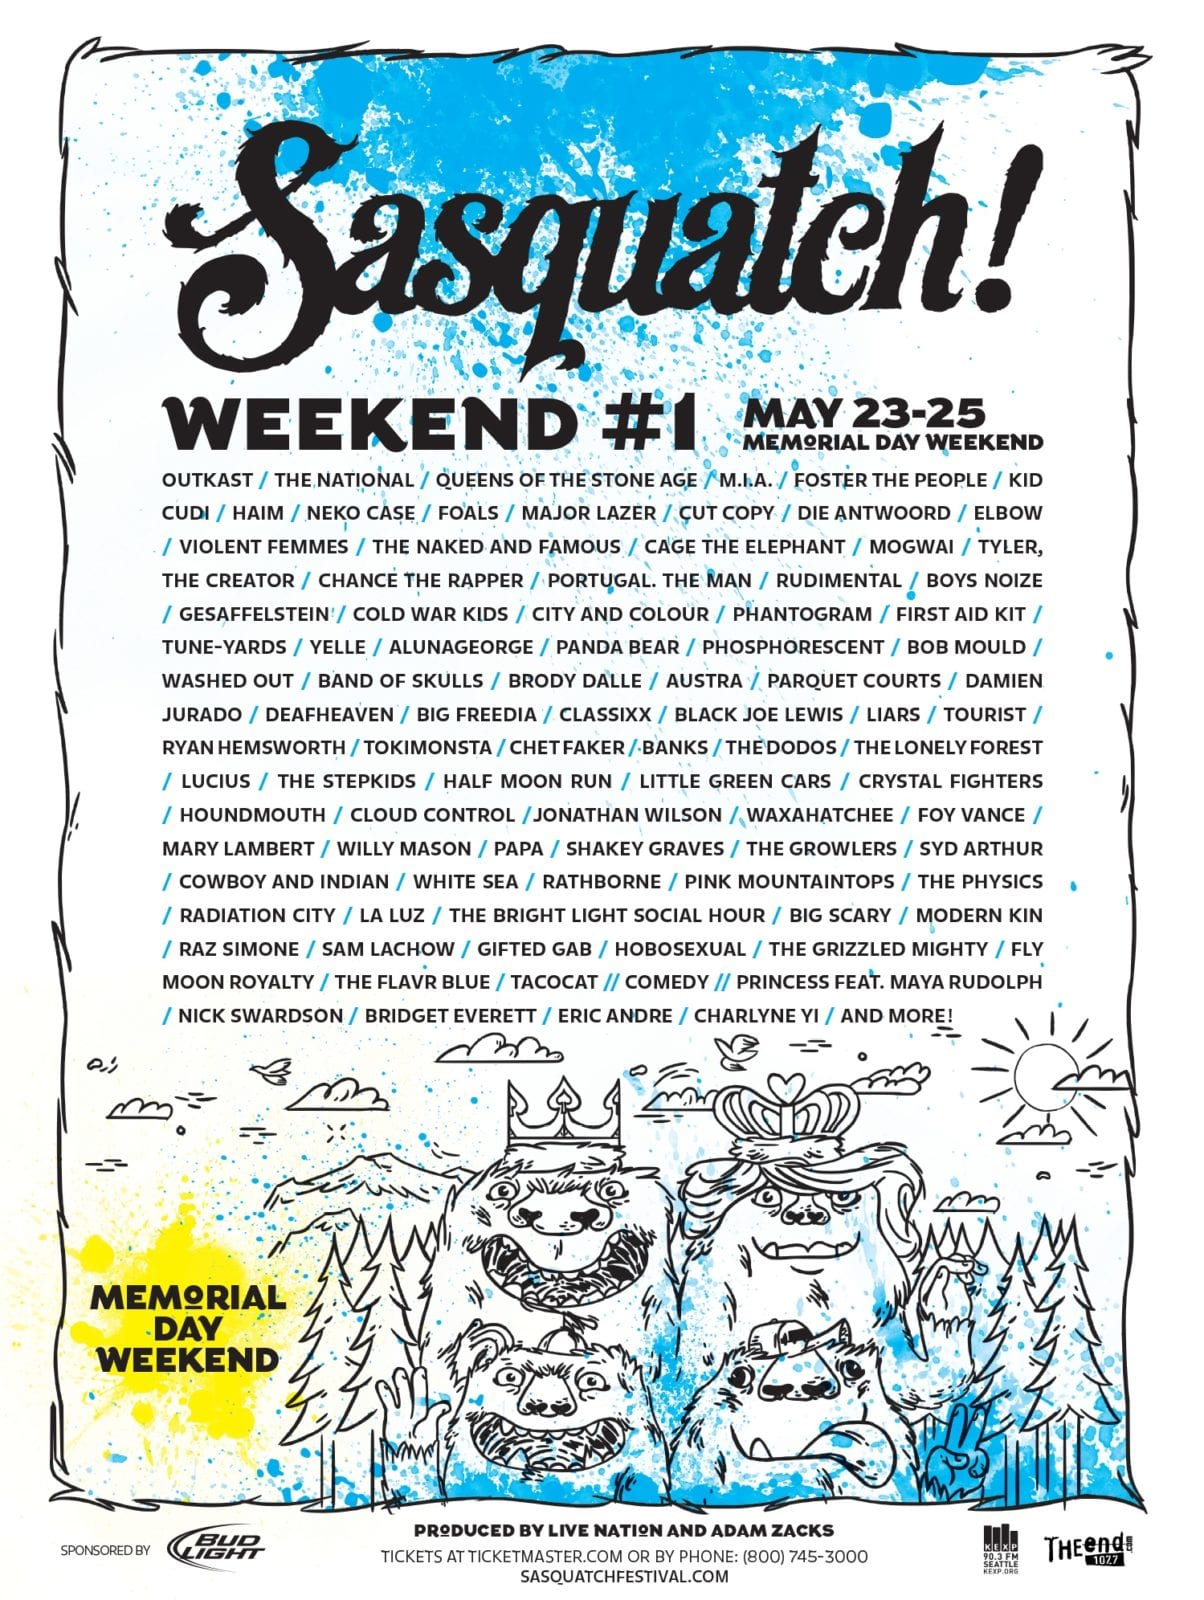 Sasquatch Releases Double-Sized 2014 Lineups!